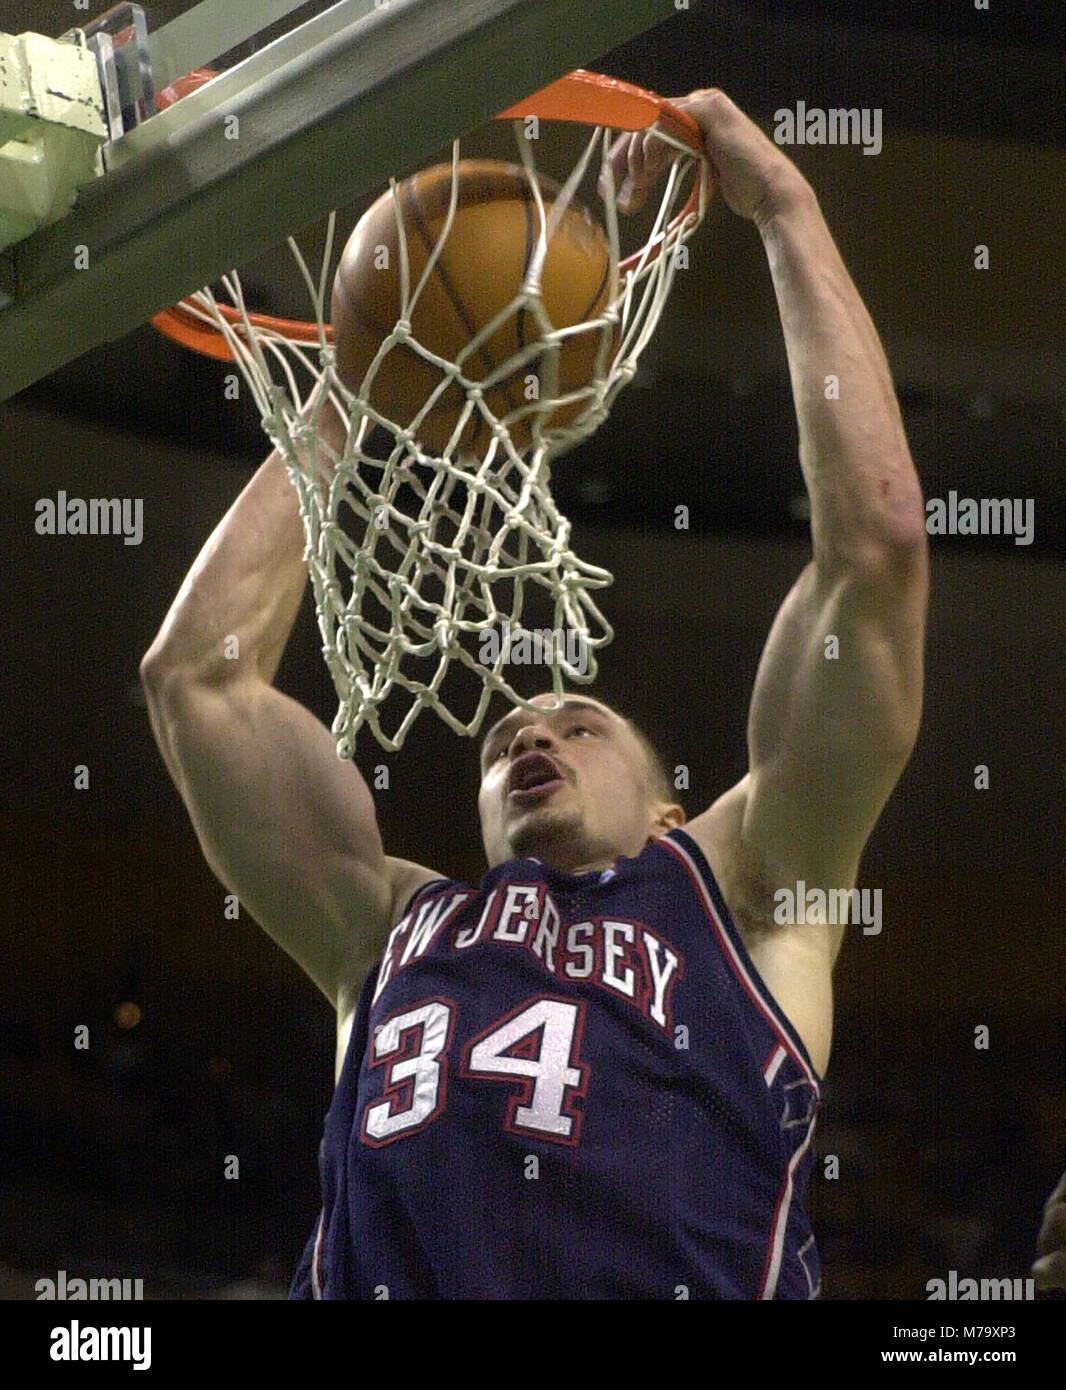 New Jersey Nets #34 Aaron Williams dunks the ball in game action ...